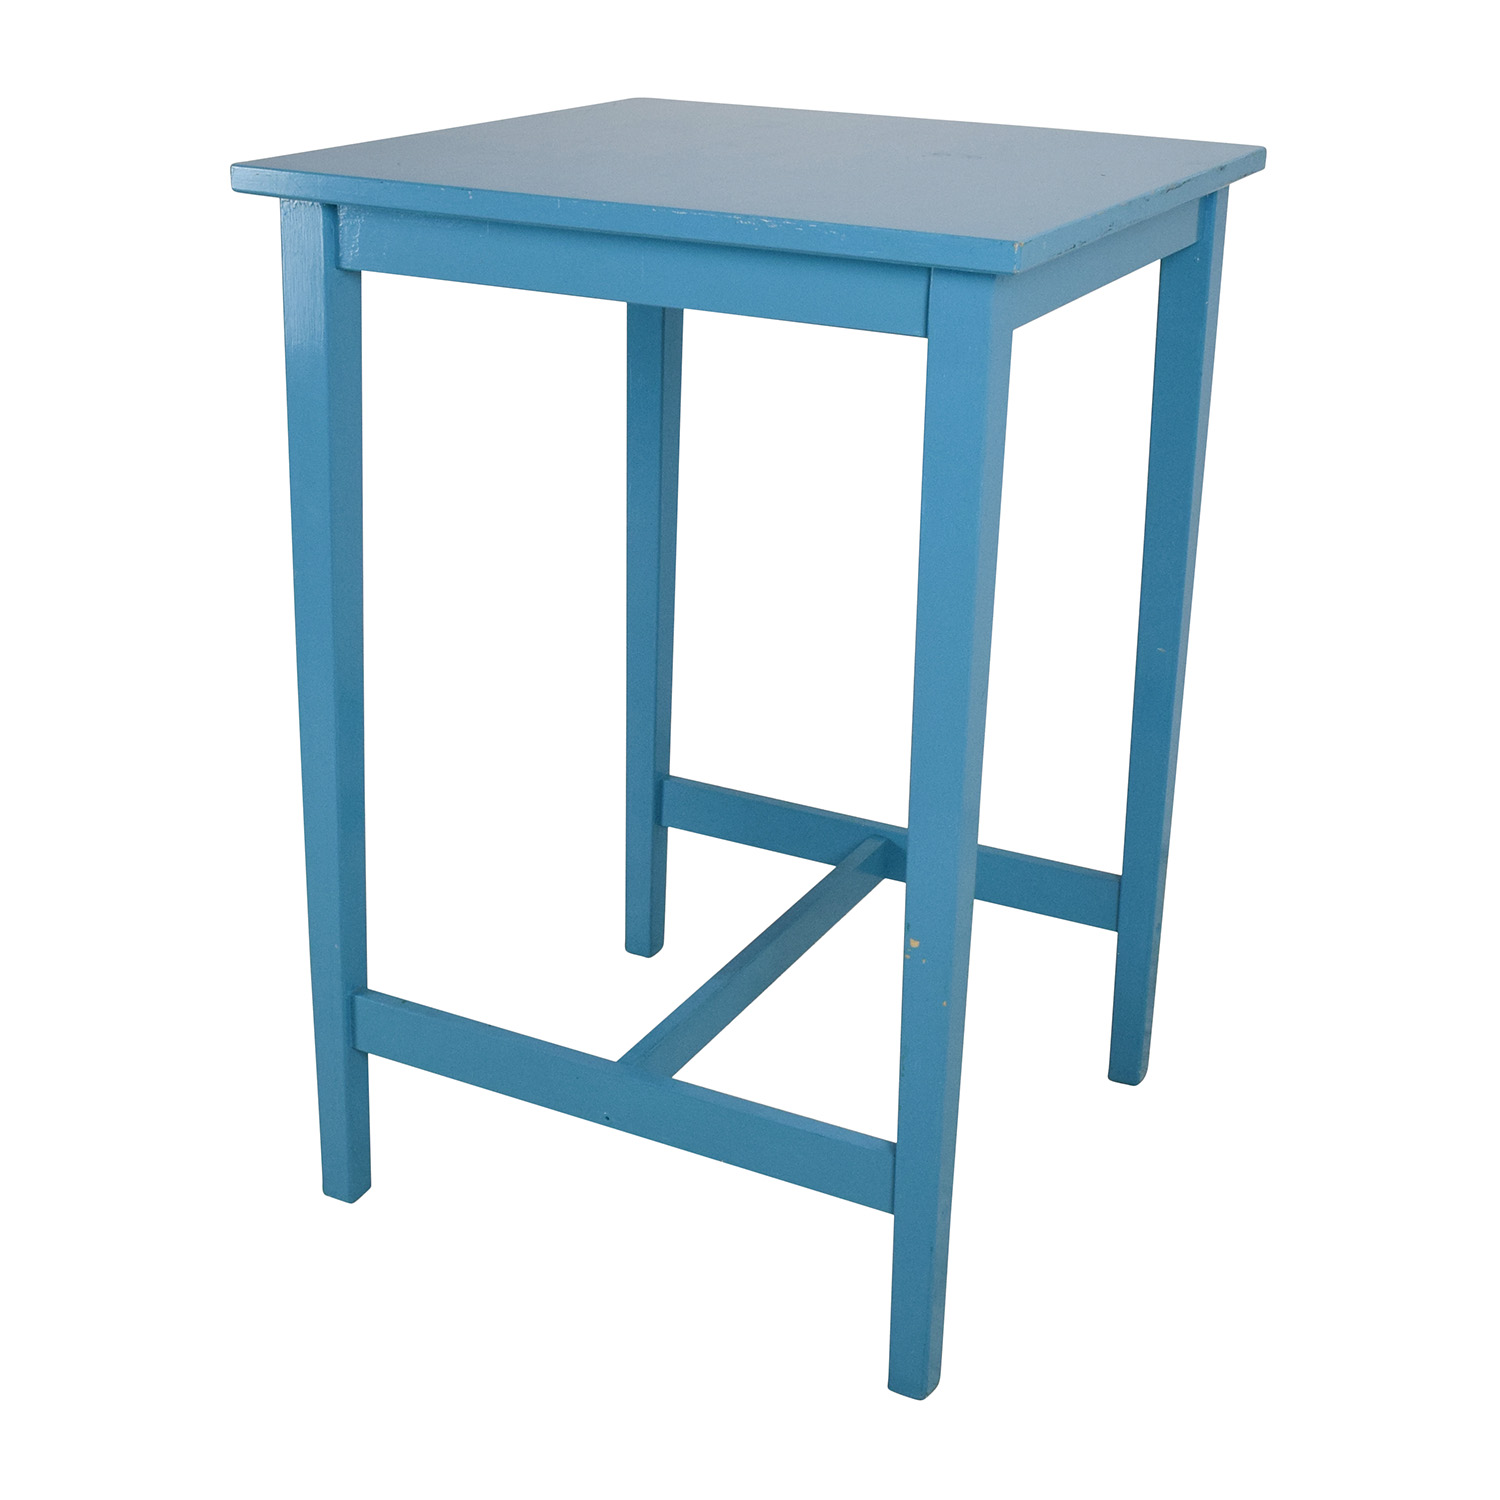 Beau Blue Wooden High Table Sale